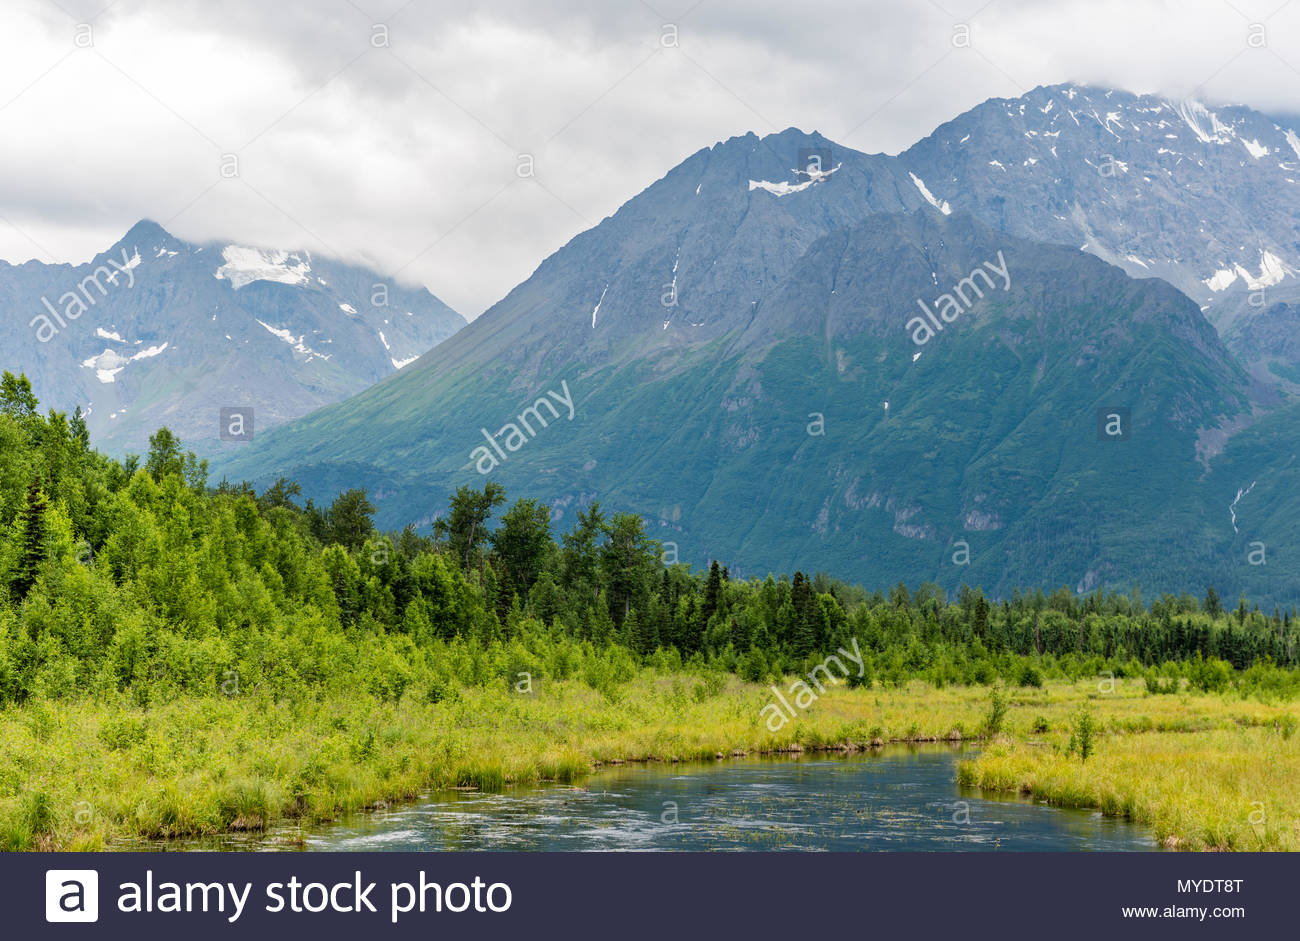 The Chugach Mountains Tower Over Alaska's Eagle River - Stock Image